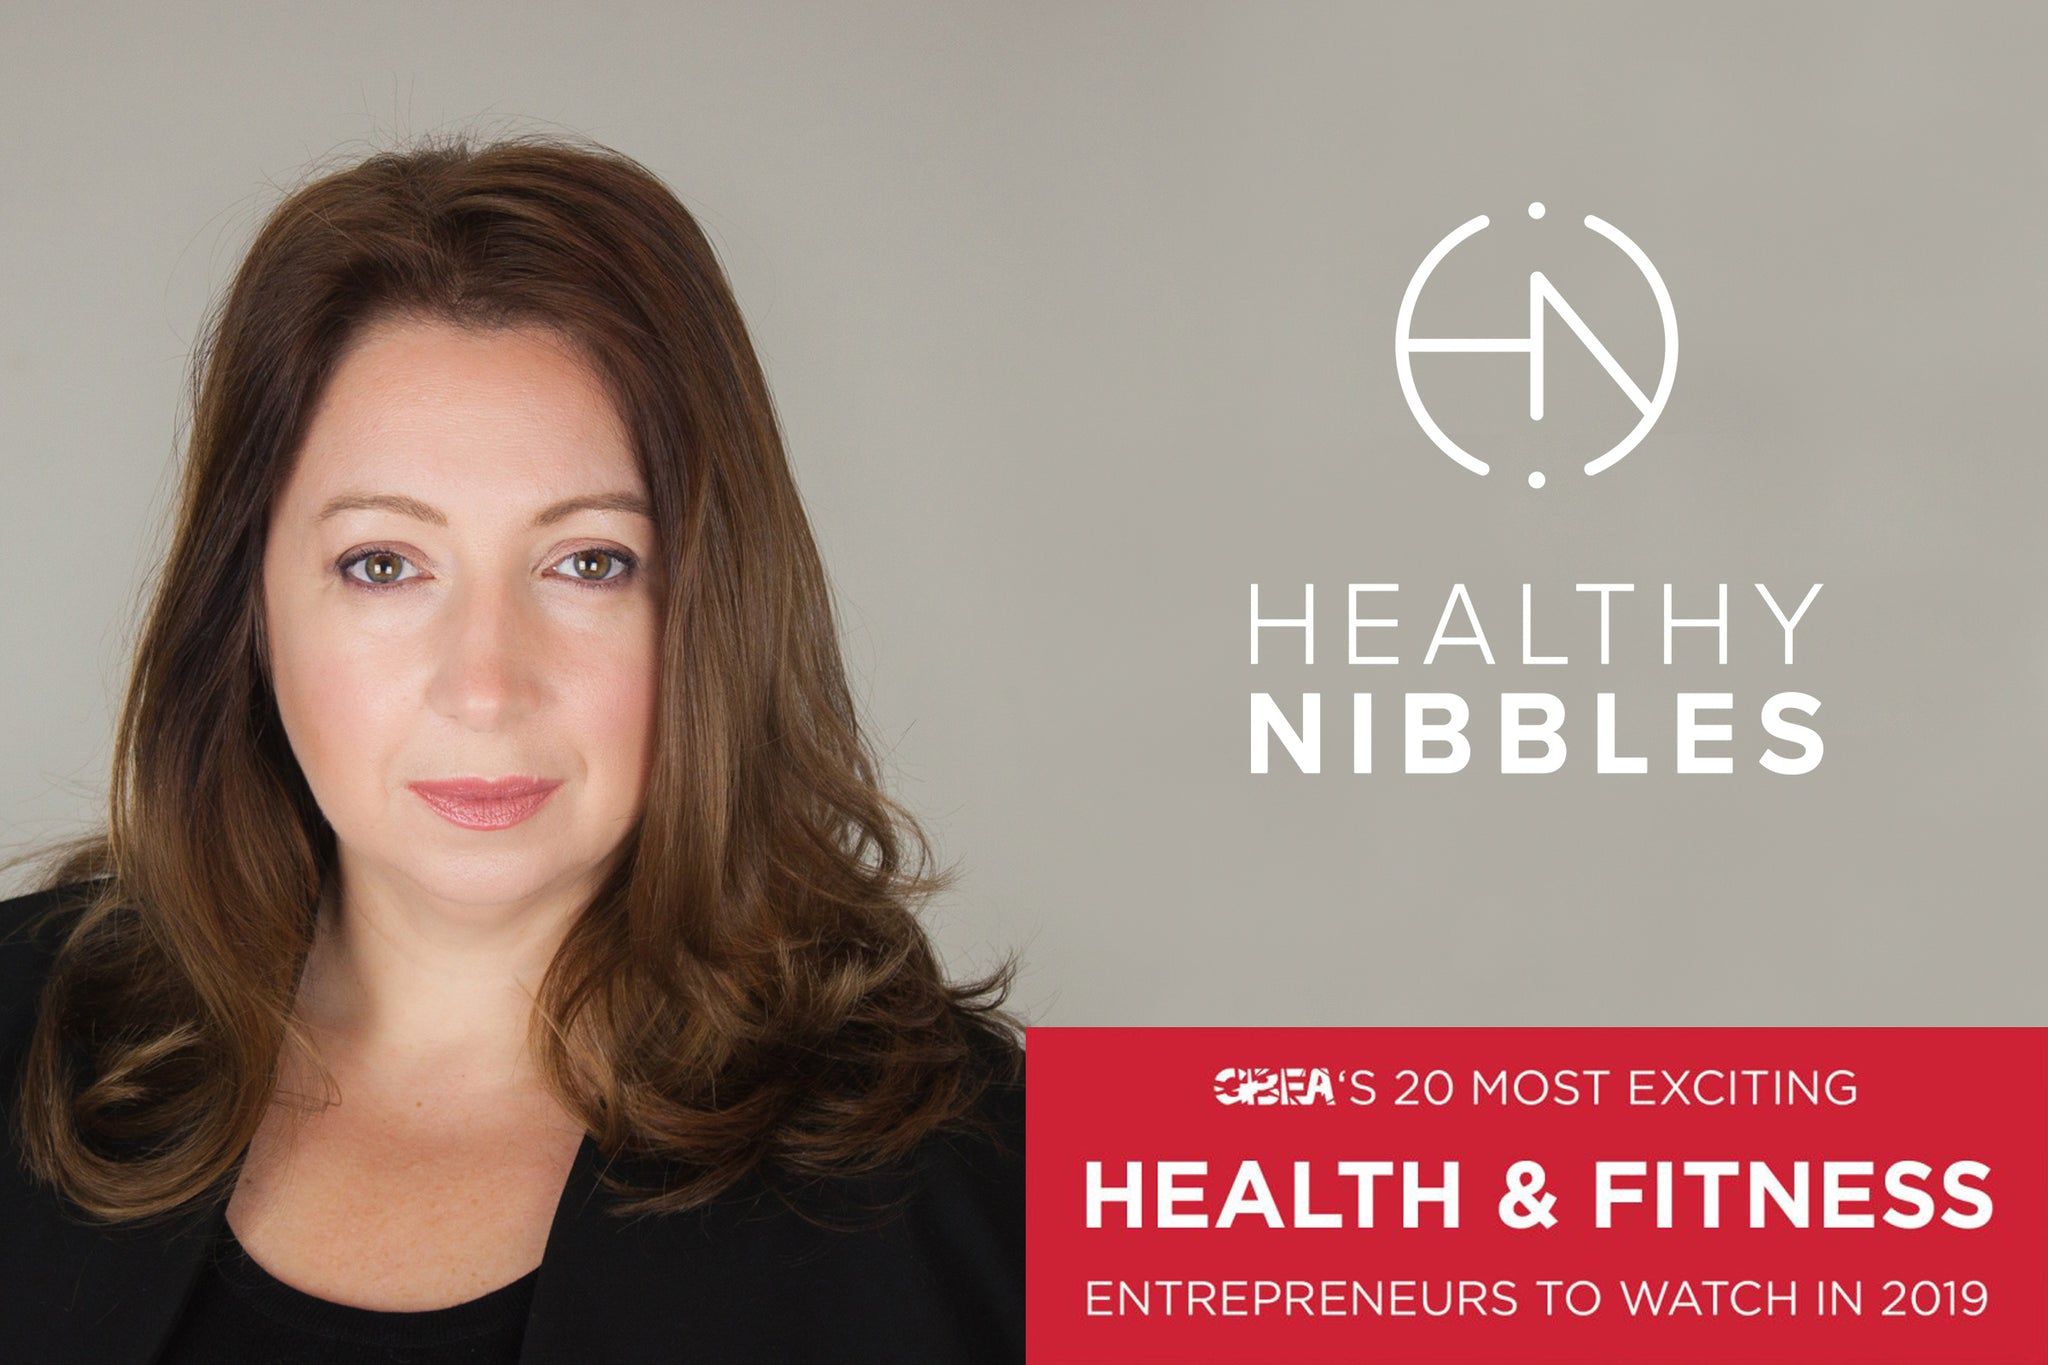 GBEA's 20 most exciting health & fitness entrepreneurs to watch in 2019.